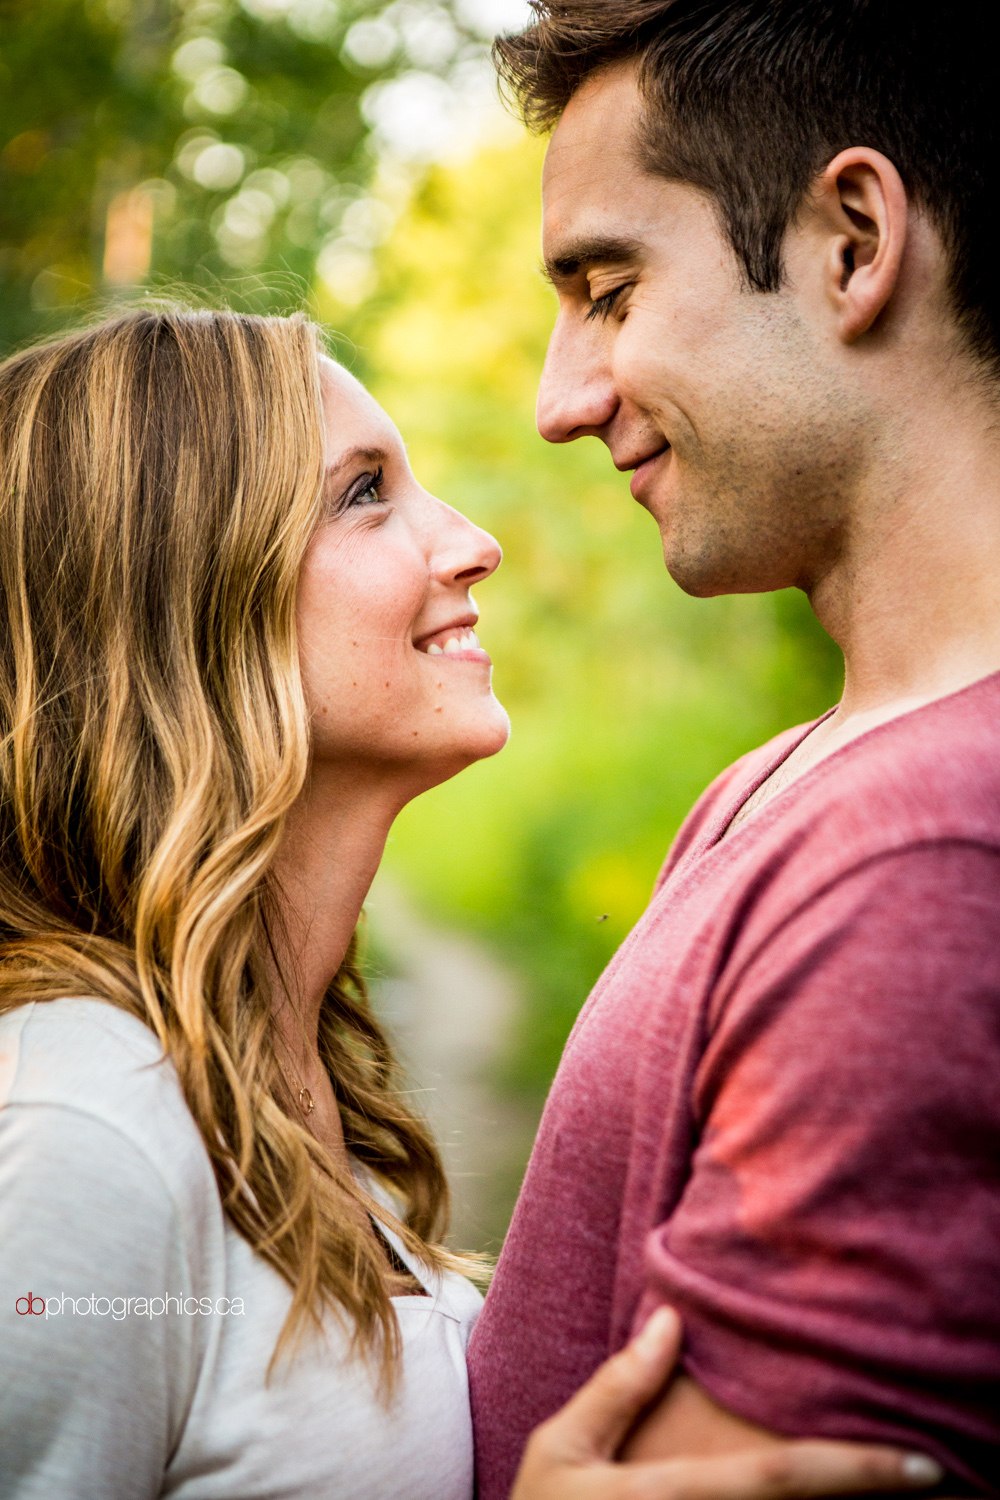 Ben & Melissa - Engagement Session - 20140713 - 0099.jpg